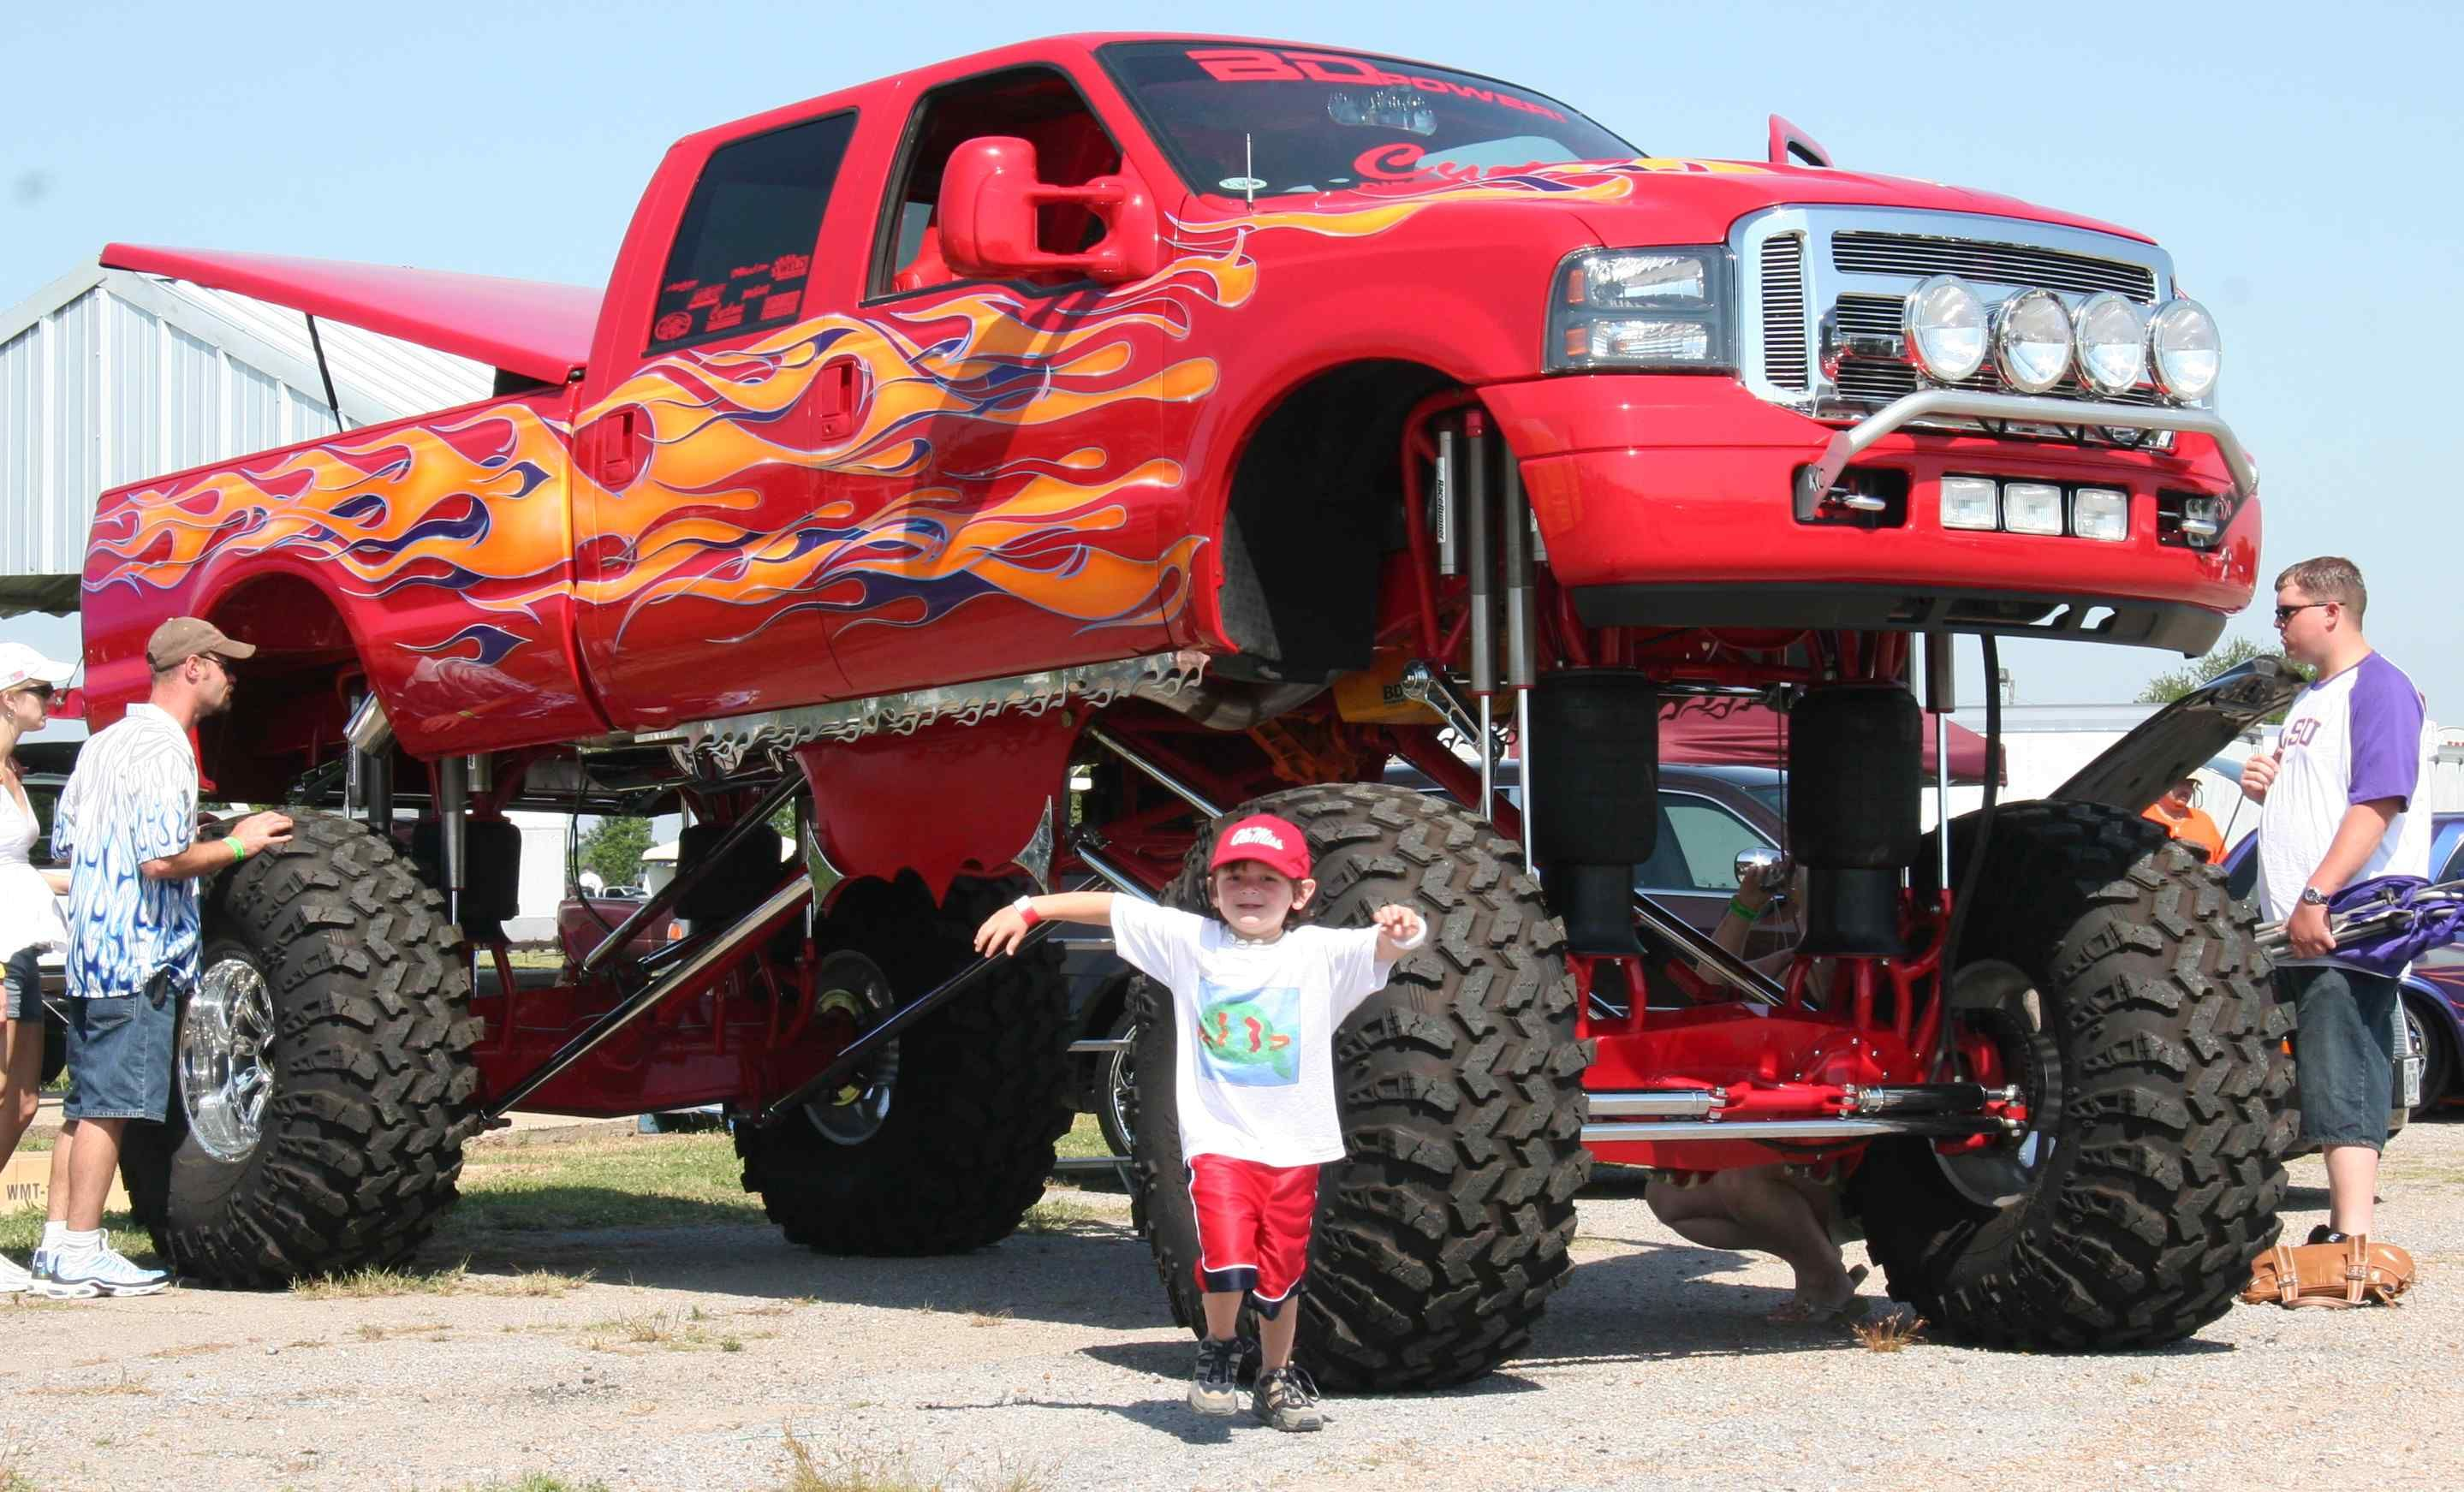 Red Monster Ford Super Duty Truck Not A F 150 A Larger Truck